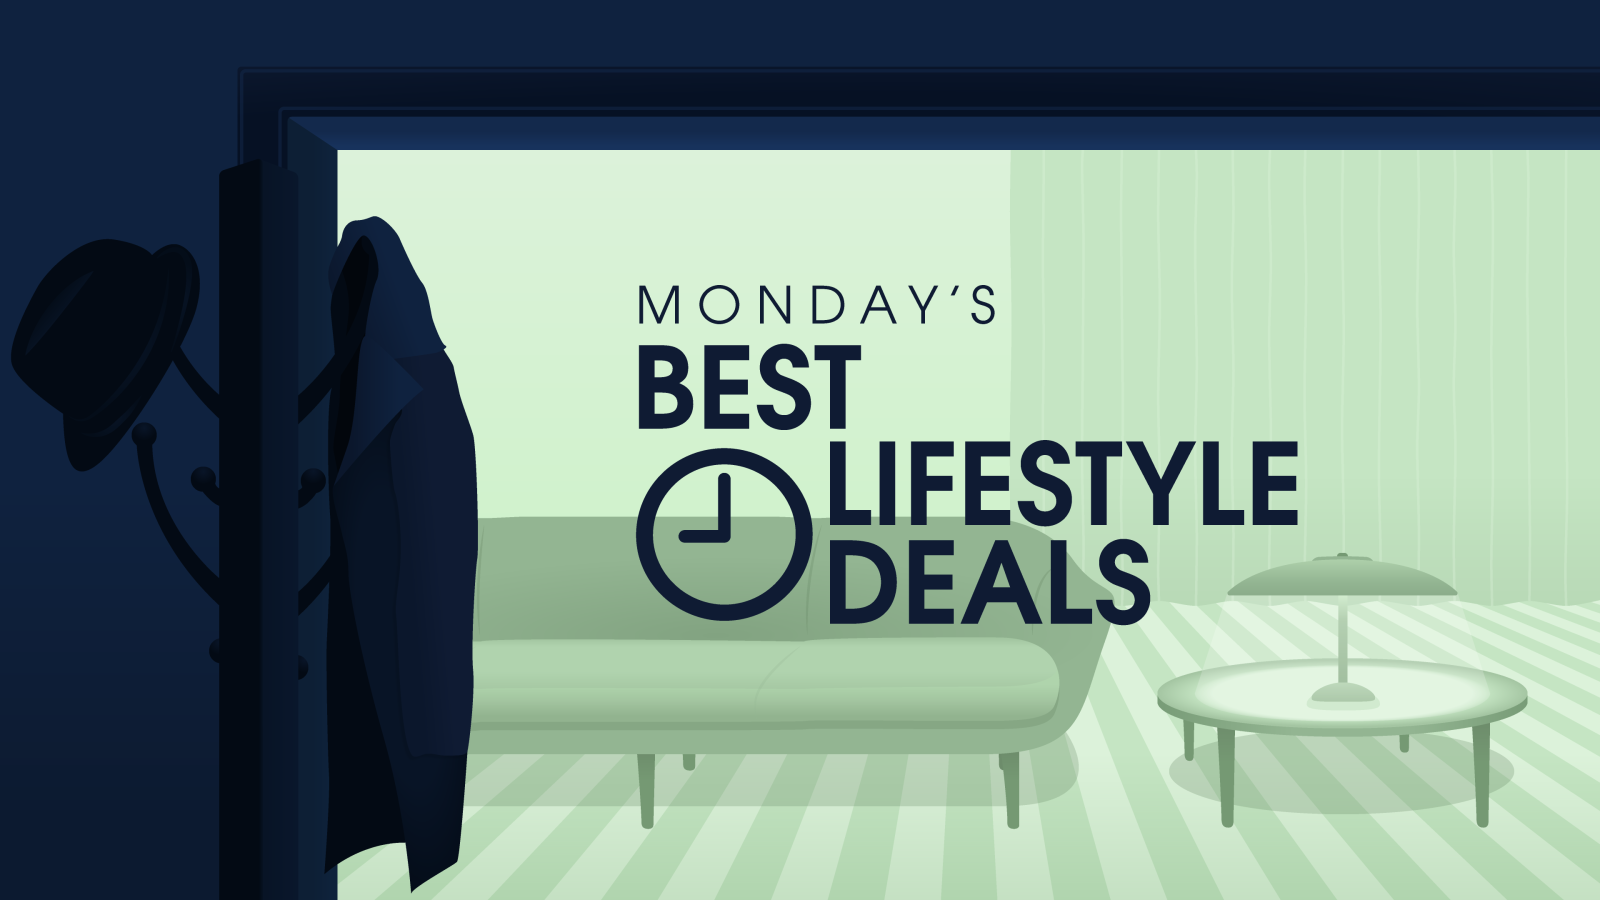 Monday's Best Lifestyle Deals: Lululemon, Ray-Ban Sunglasses, Instant Pot, more